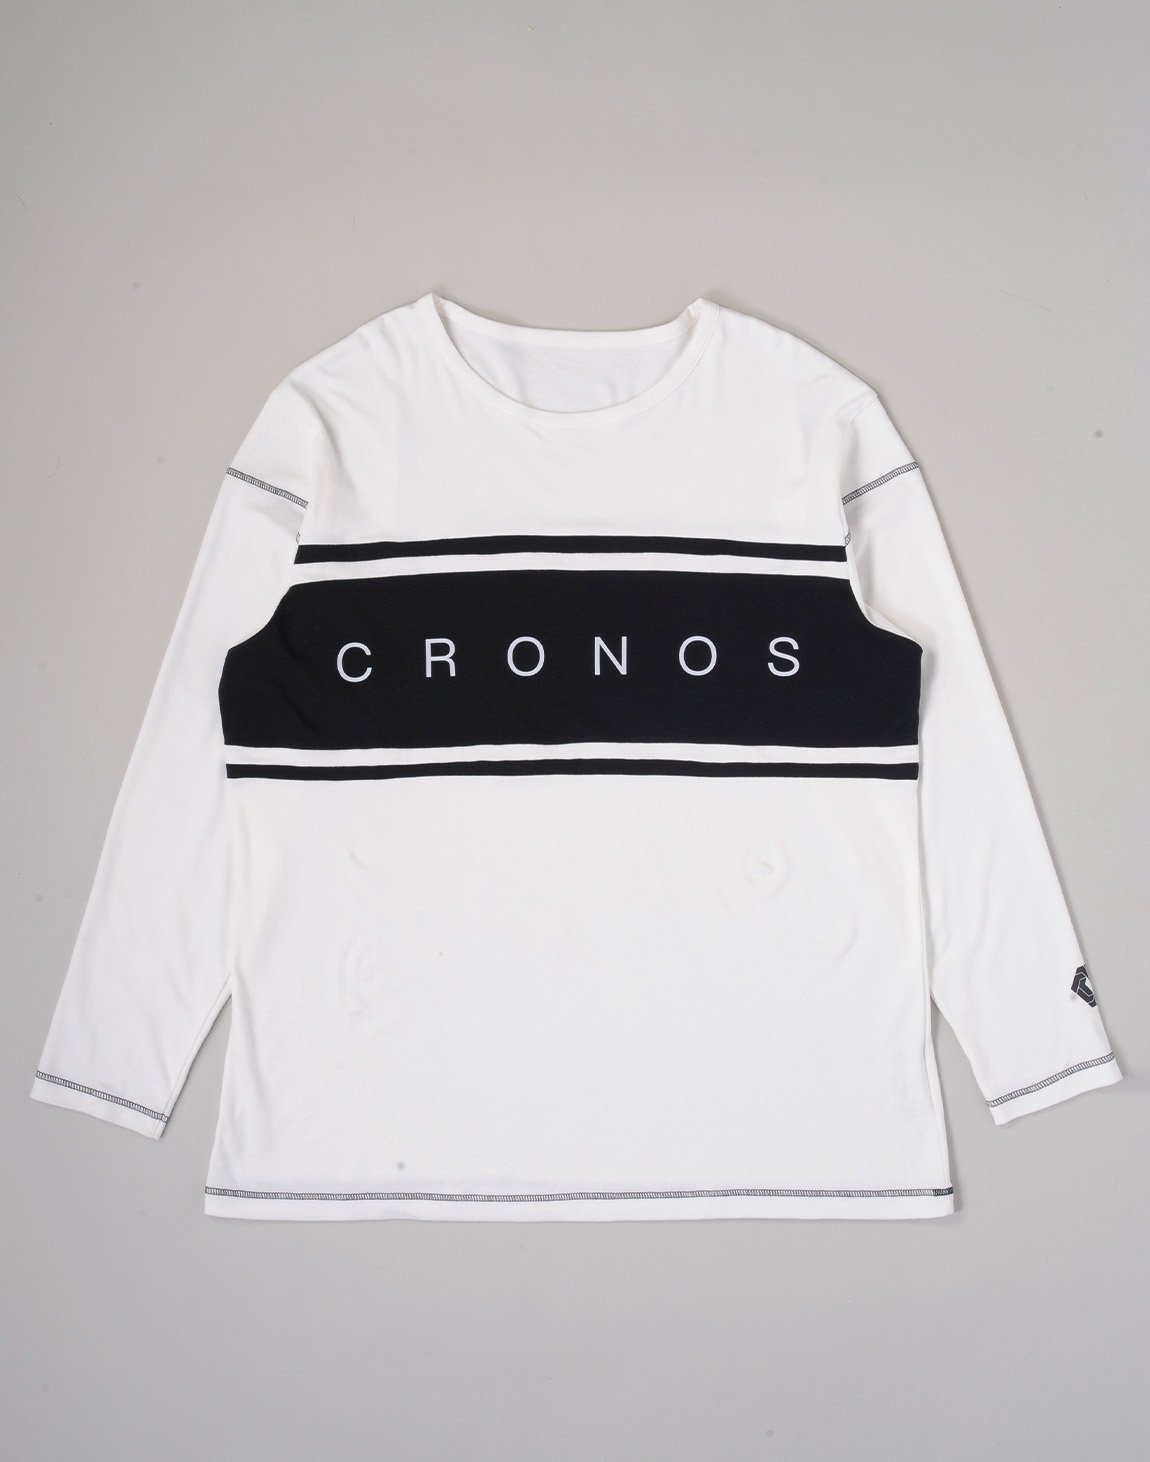 <img class='new_mark_img1' src='https://img.shop-pro.jp/img/new/icons1.gif' style='border:none;display:inline;margin:0px;padding:0px;width:auto;' />CRONOS BANNER LOGO BIG LONG SLEEVE【WHITE】